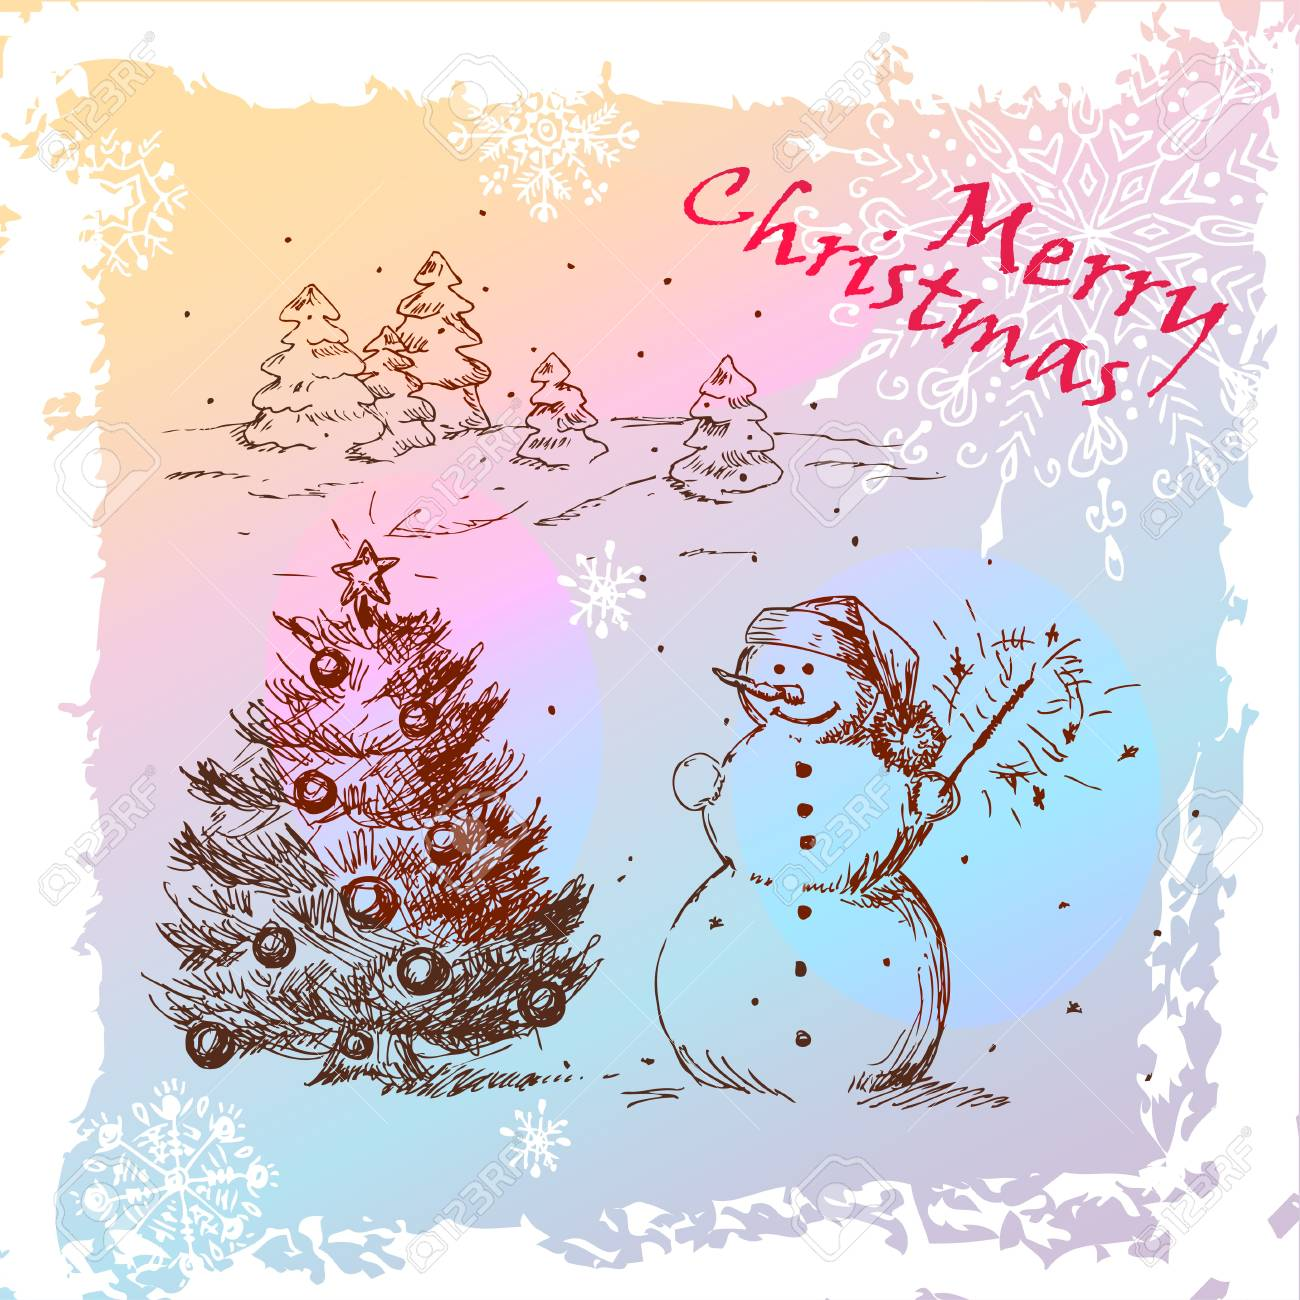 Christmas Hand Drawn Illustration With Snowman And Christmas Tree, for xmas design Stock Vector - 16666678